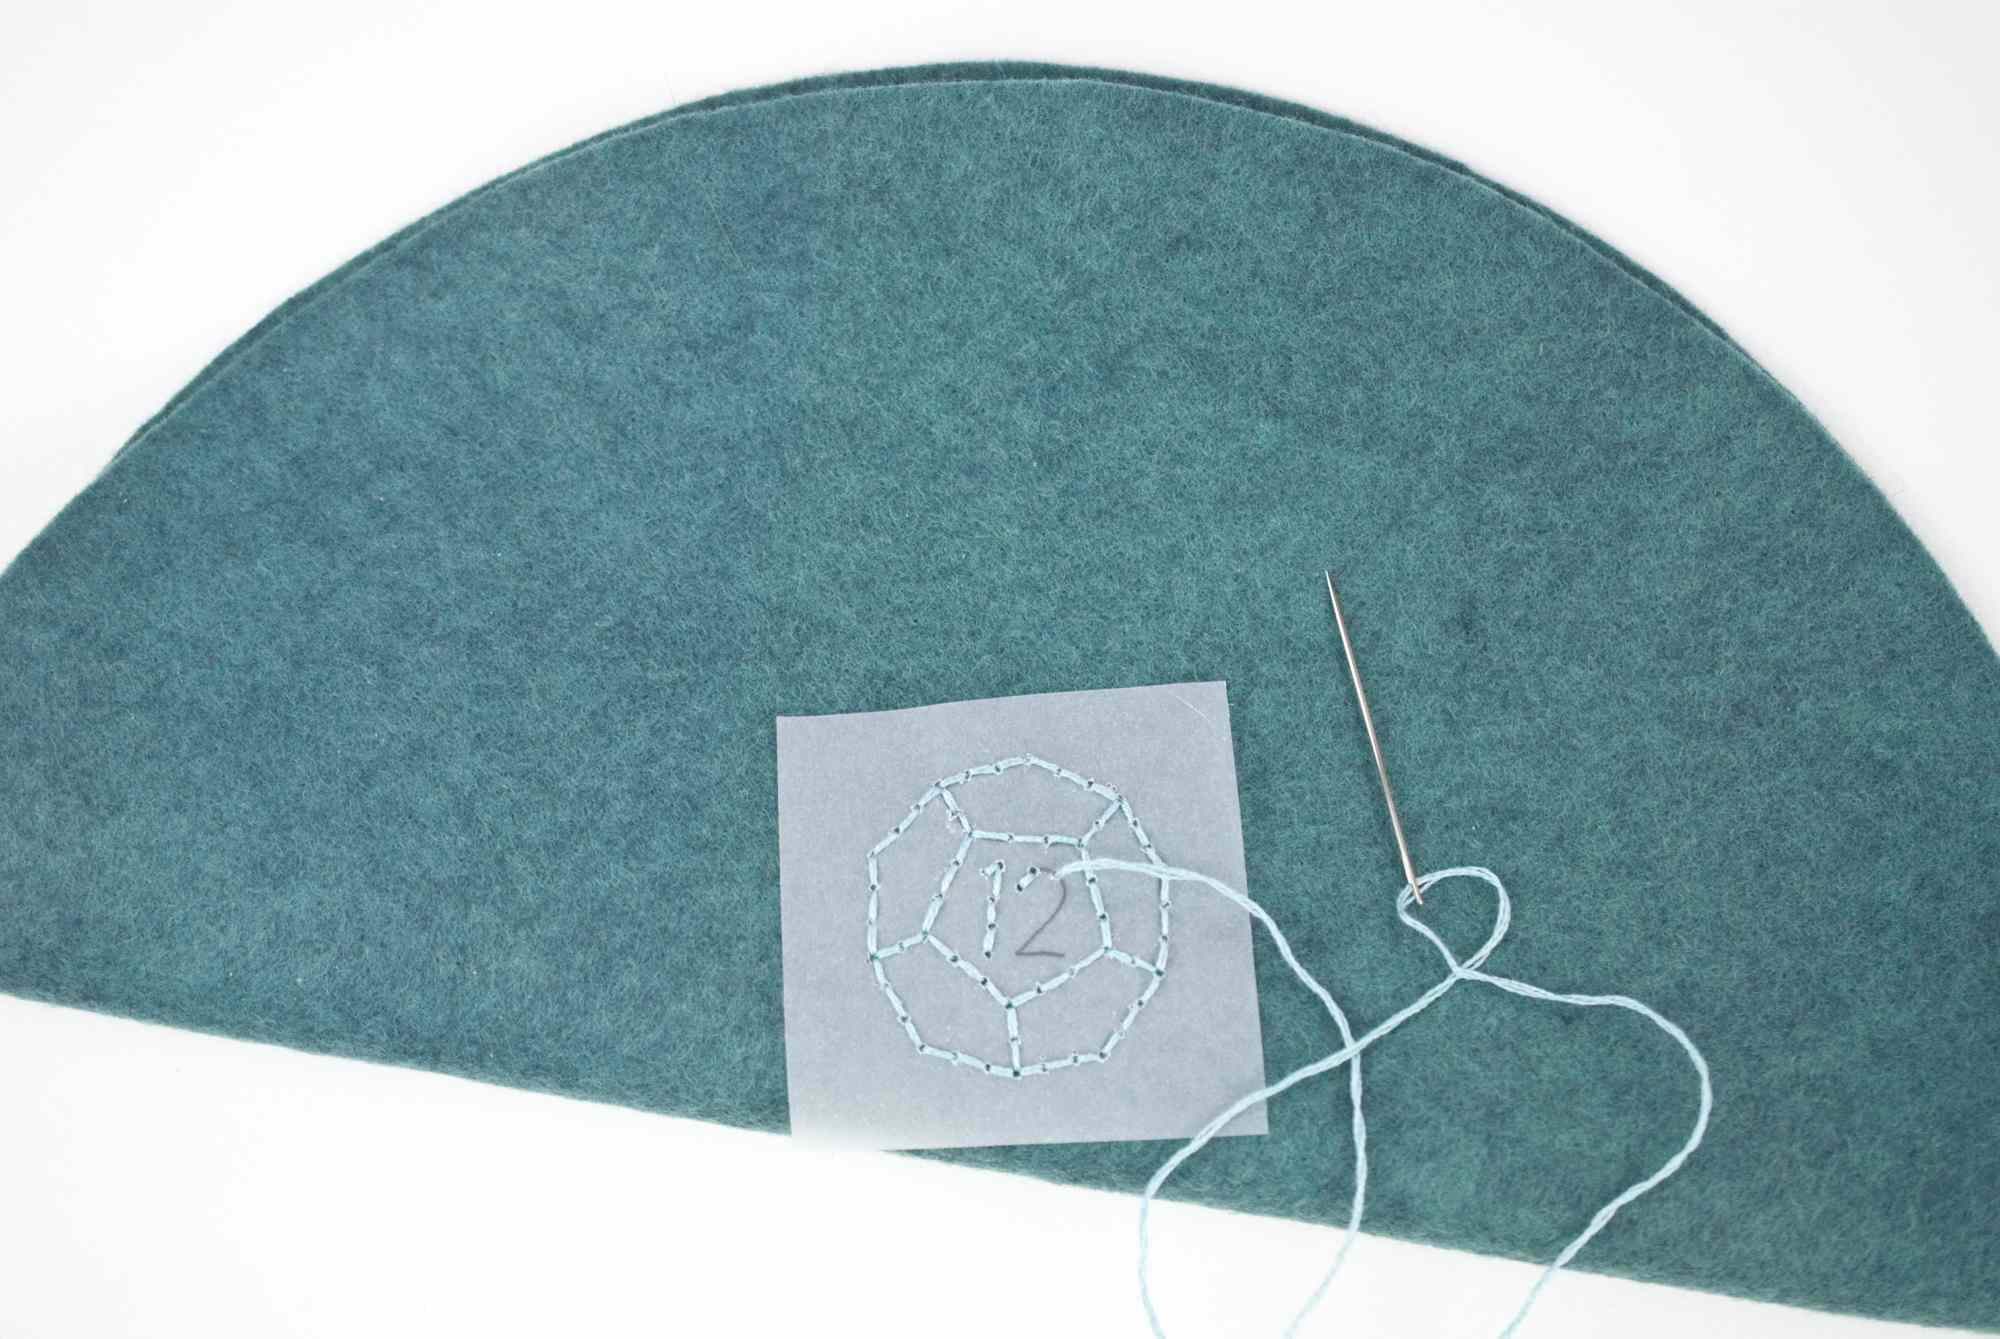 Embroider a Die on the Felt Circle